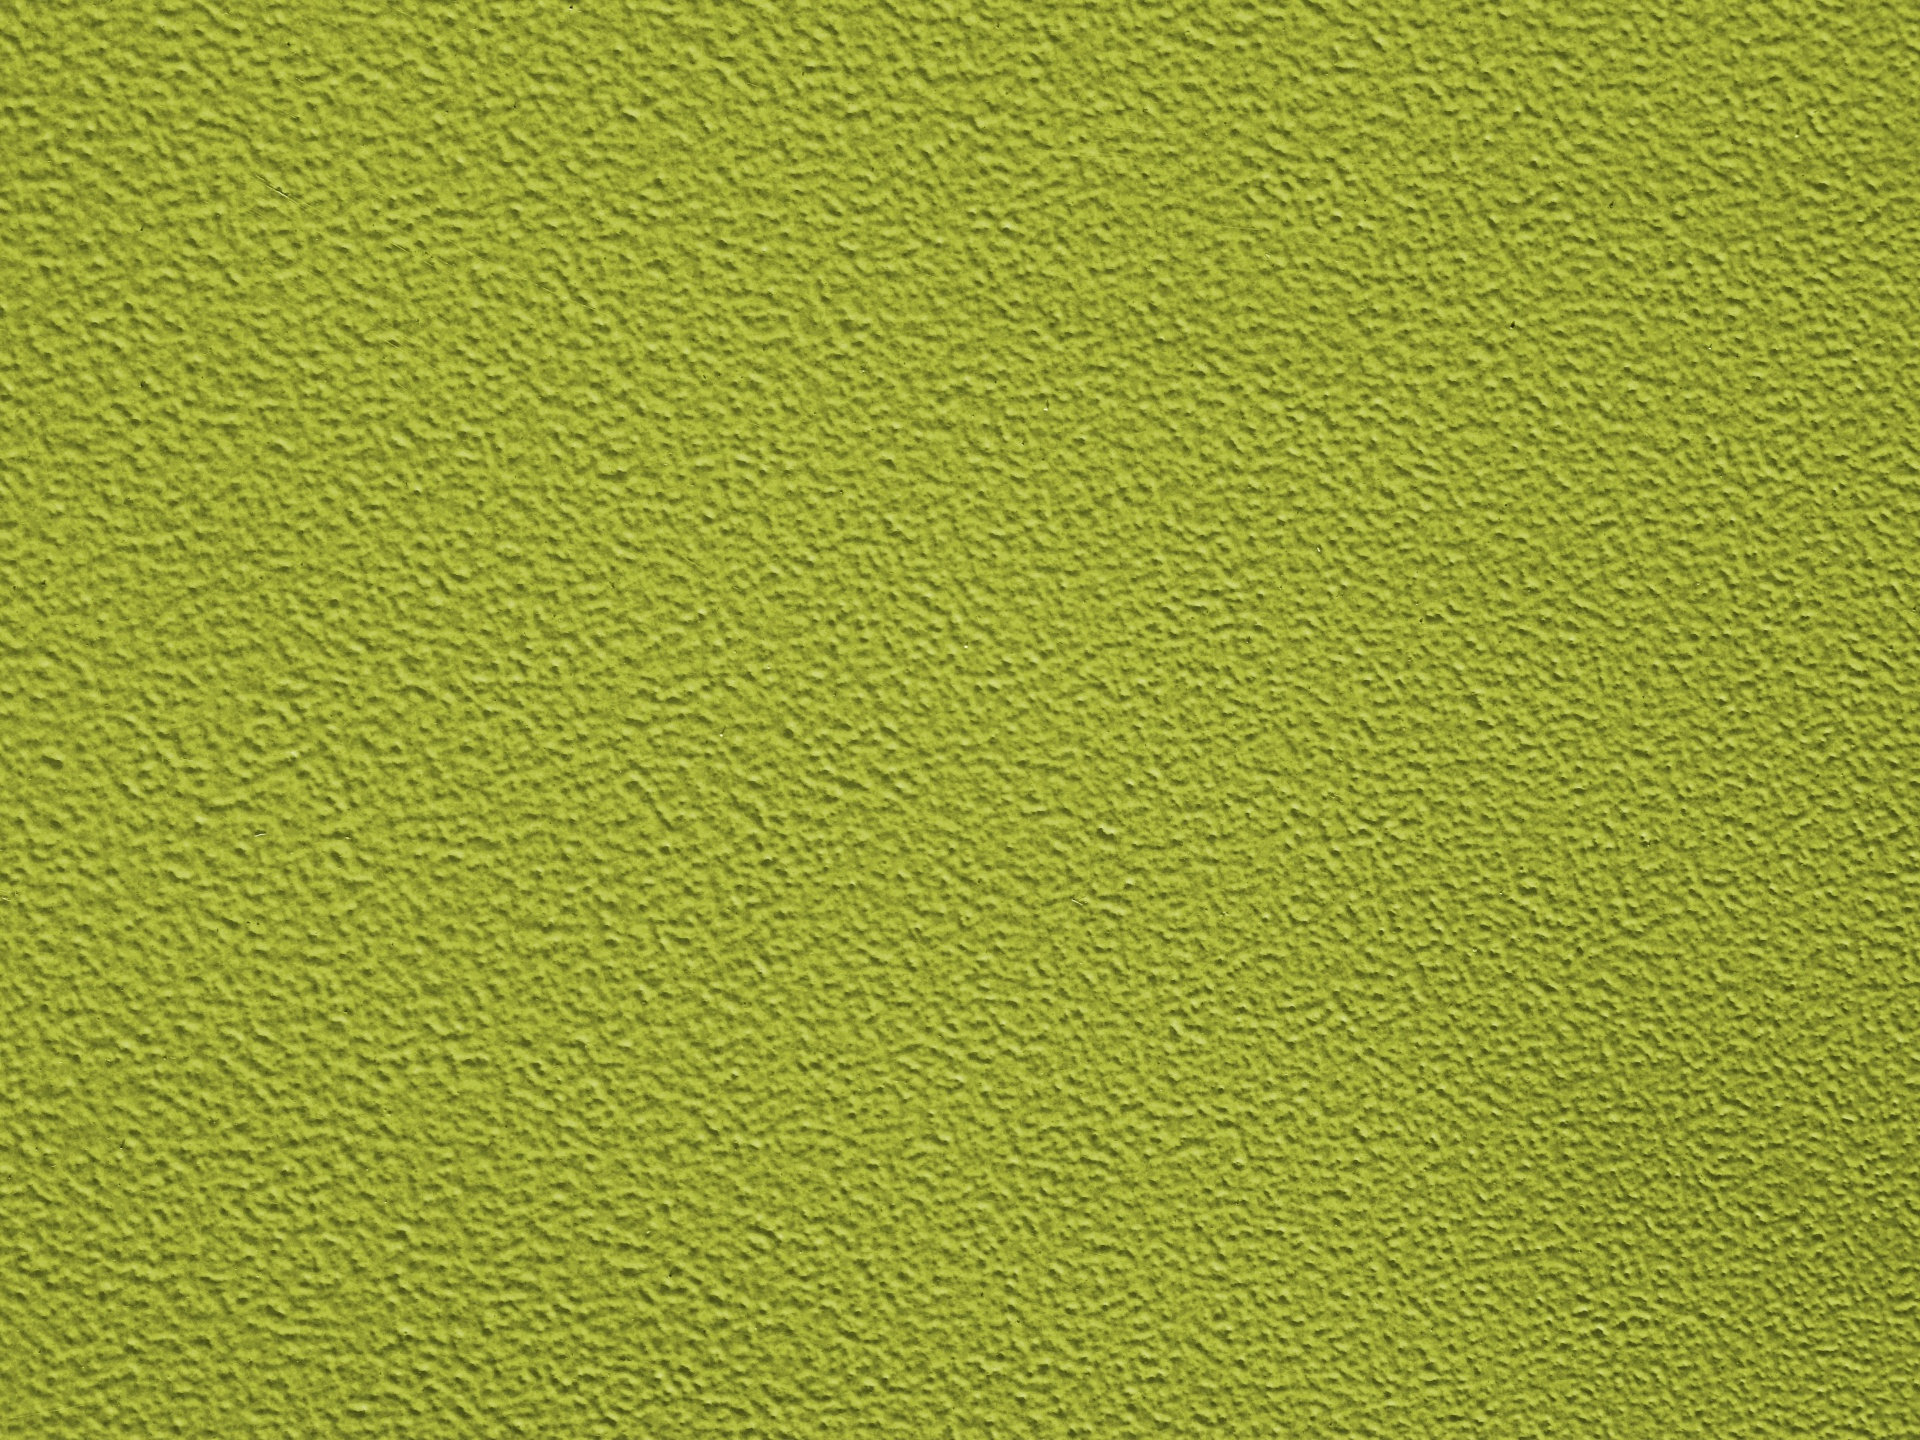 Olive Green Textured Background Free Stock Photo  Public